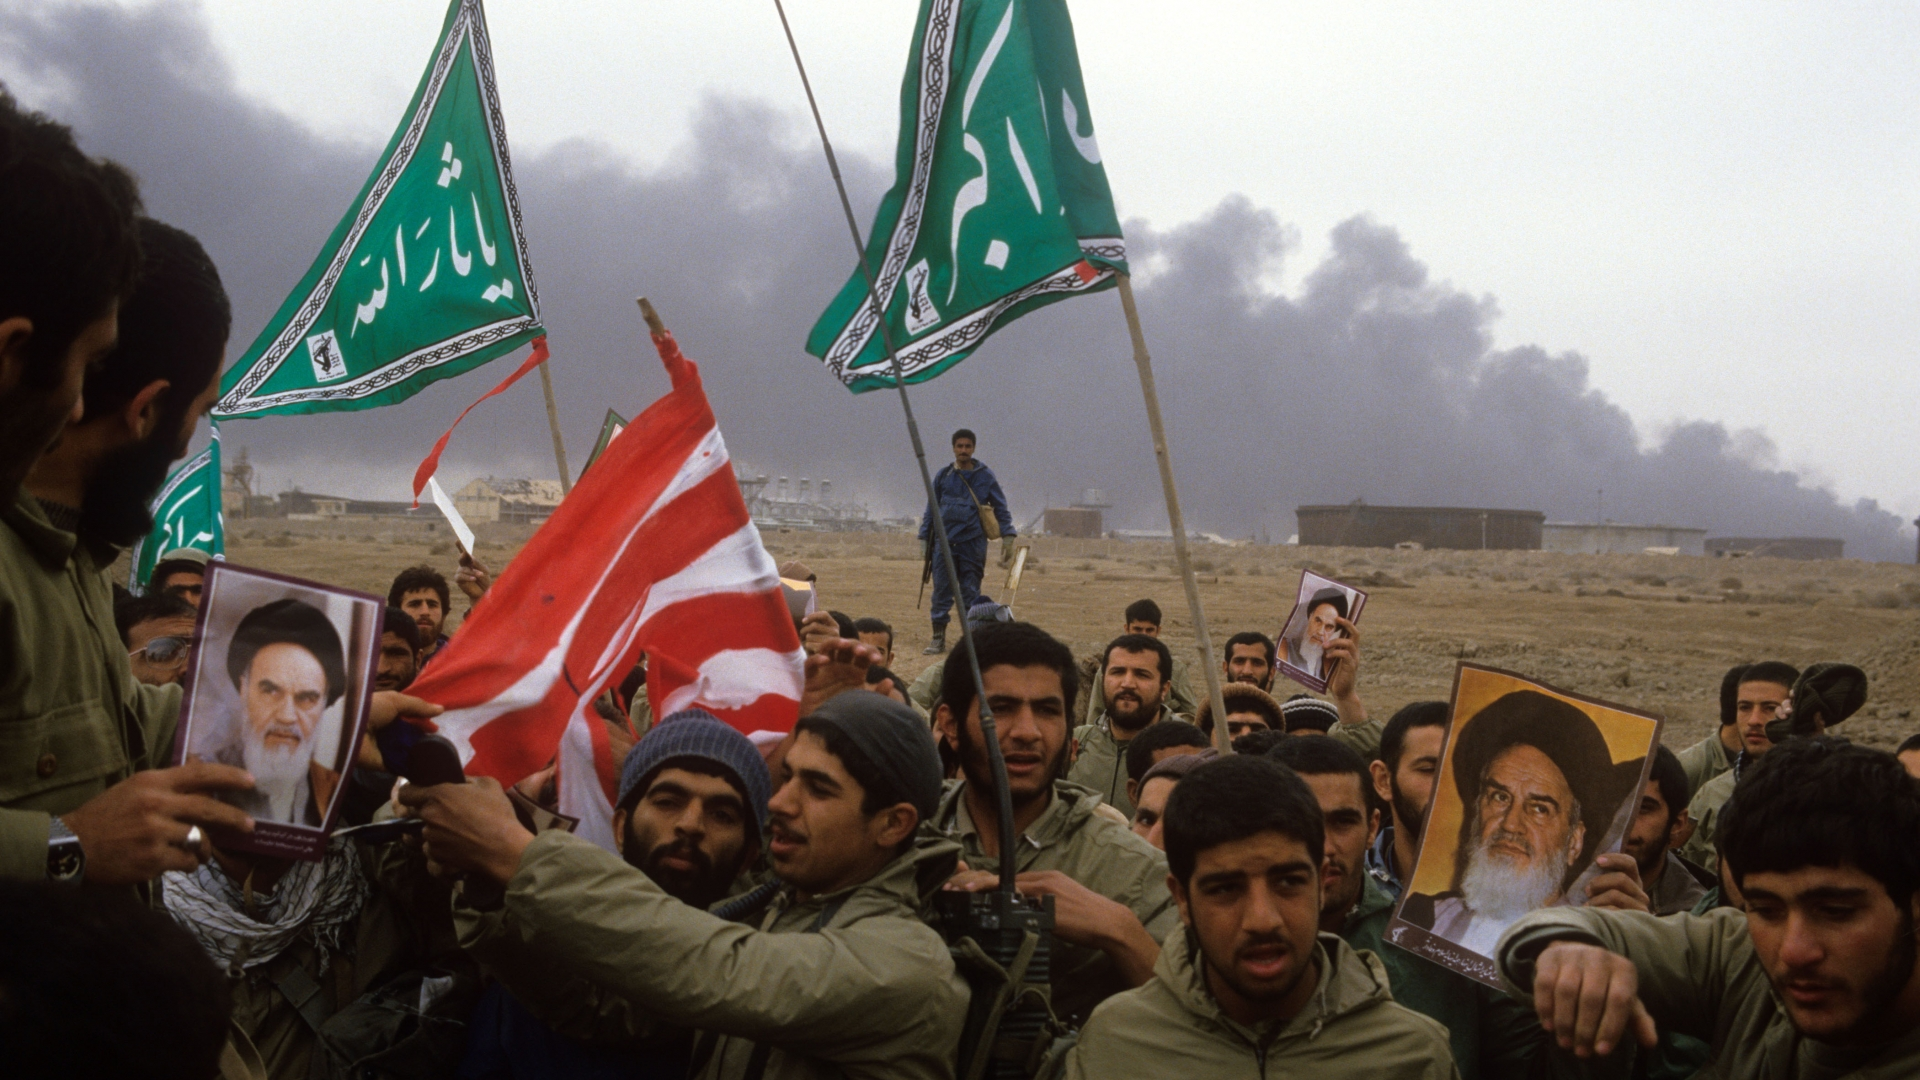 Iran's Revolutionary Guards preparing to burn an American flag on the al-Fao Peninsula after it was recaptured by Iranian forces from the Iraqi army during the Iran-Iraq War, 1986. The combatants hold up photographs of Ayatollah Khomeini, along with green flags reading 'Allah Akbar'  which translates to 'God is Great'. (Credit: Kaveh Kazemi/Getty Images)